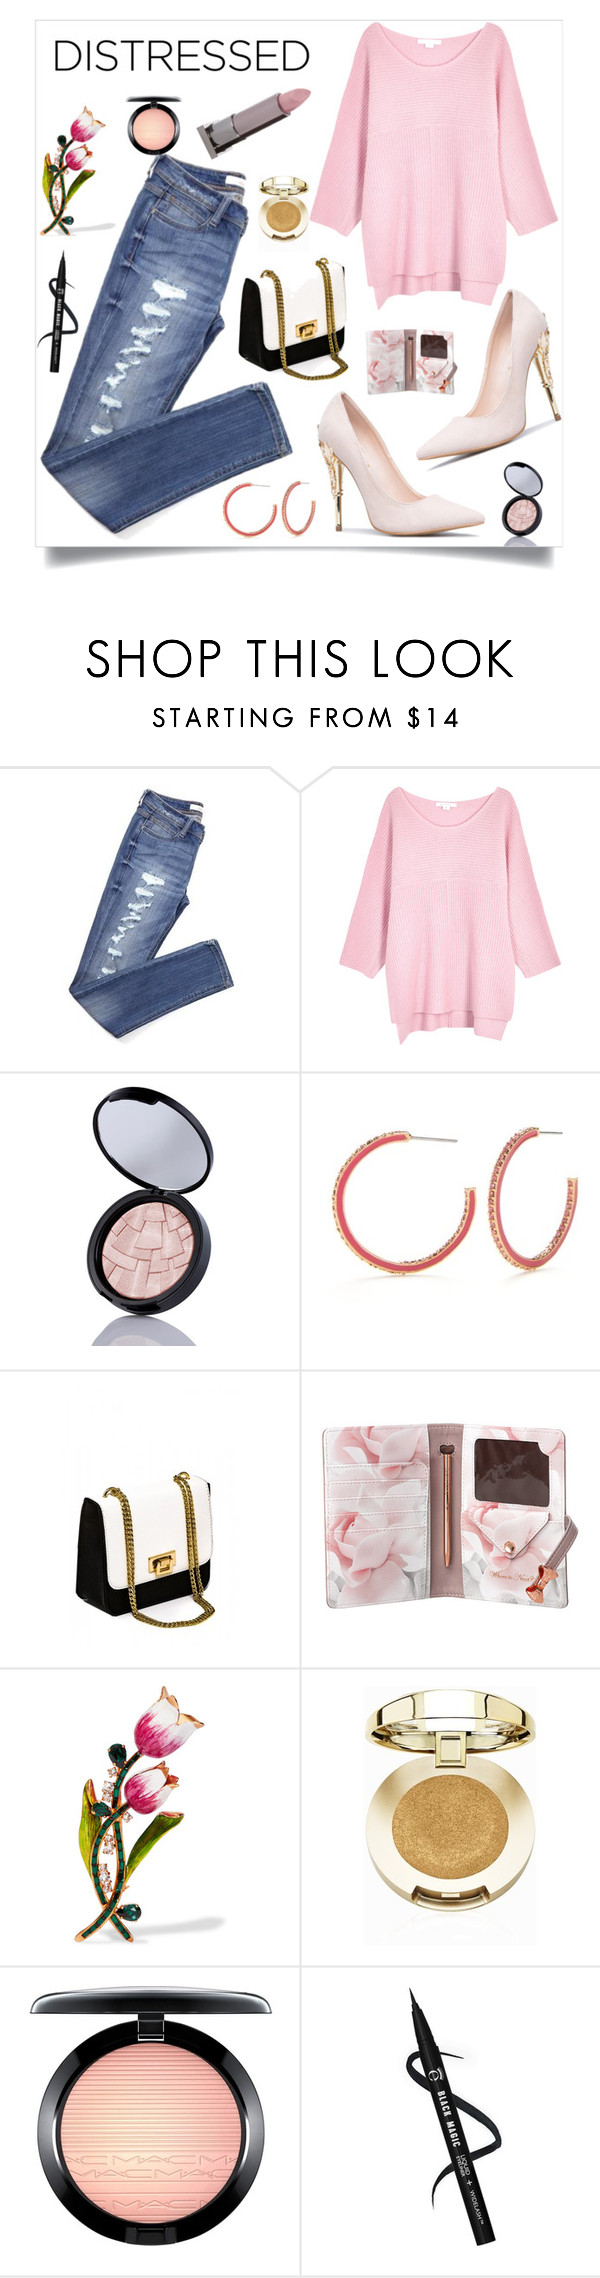 """""""True Blue: Distressed Denim"""" by alinepinkskirt ❤ liked on Polyvore featuring Duffy, Kate Spade, Ted Baker, Dolce&Gabbana, Milani, MAC Cosmetics and Lipstick Queen"""